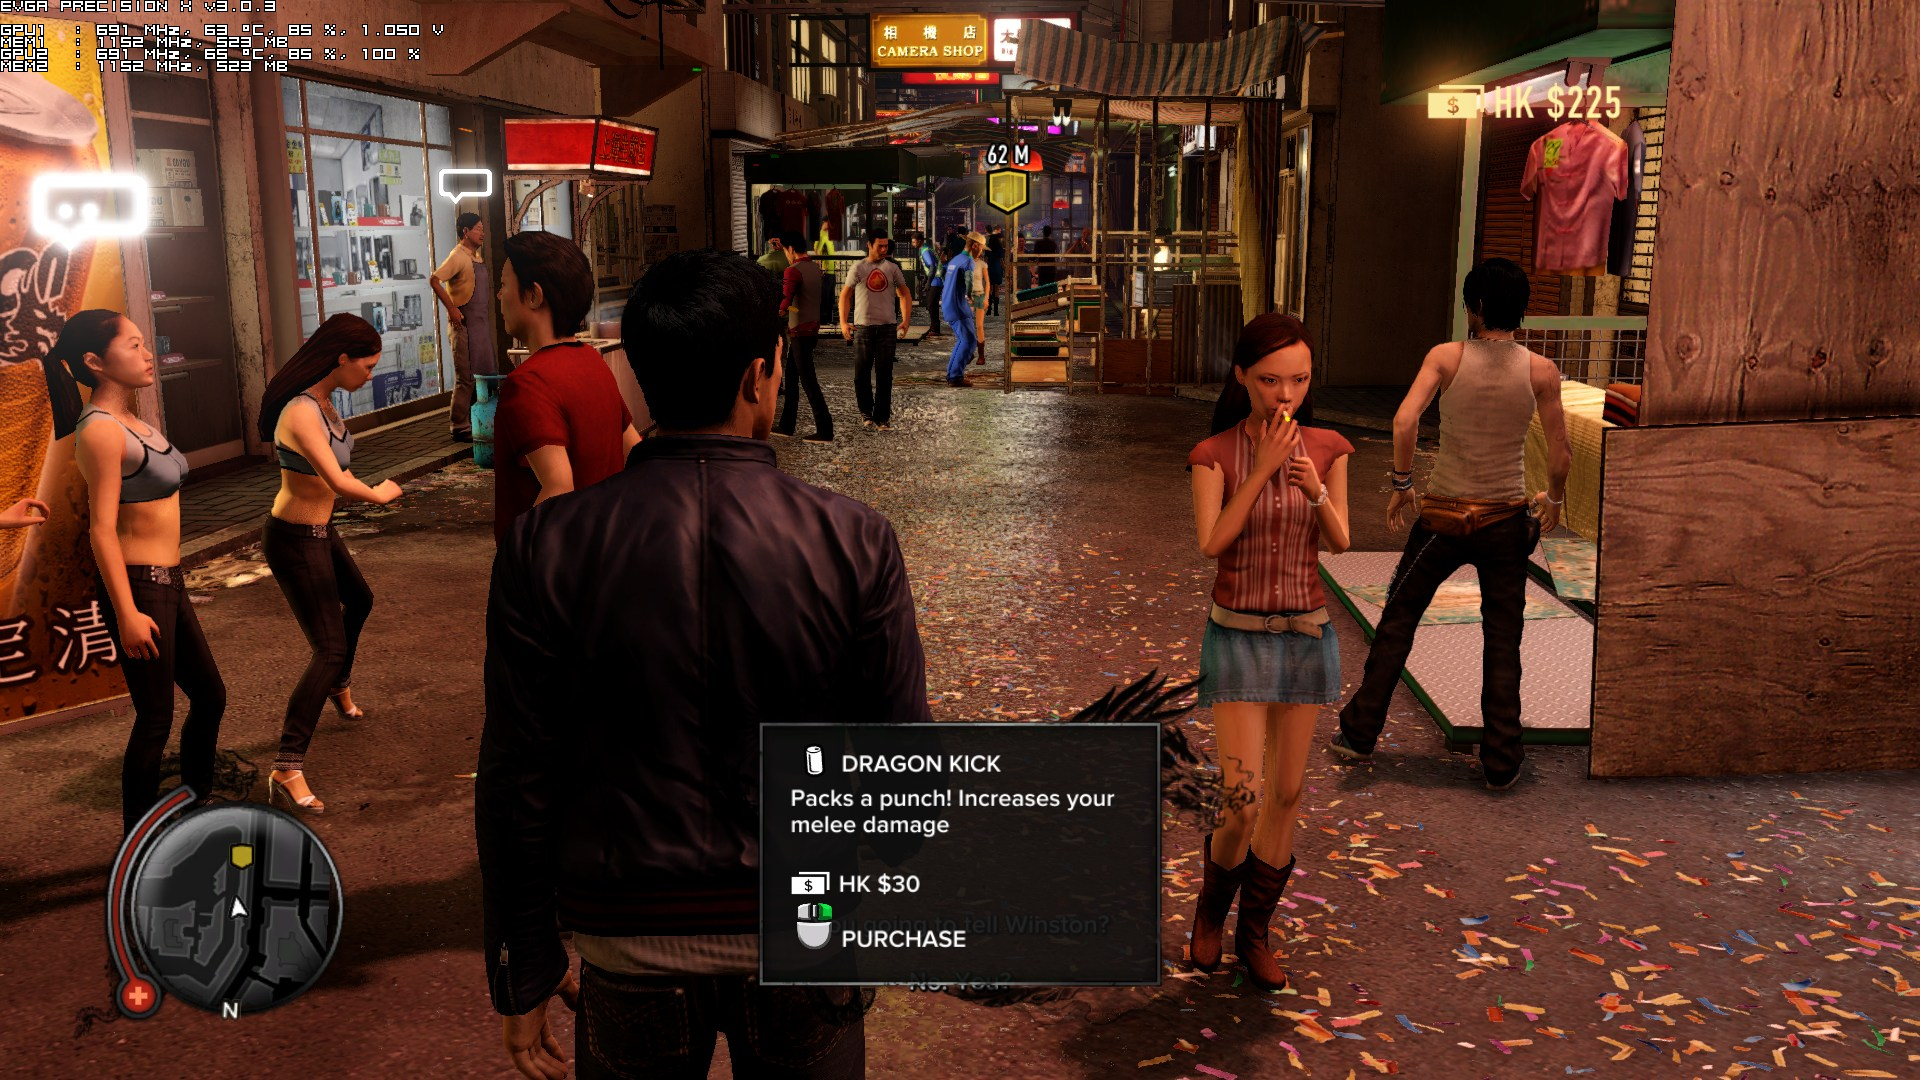 Pc] sleeping dogs save game story complete + all unlocked.